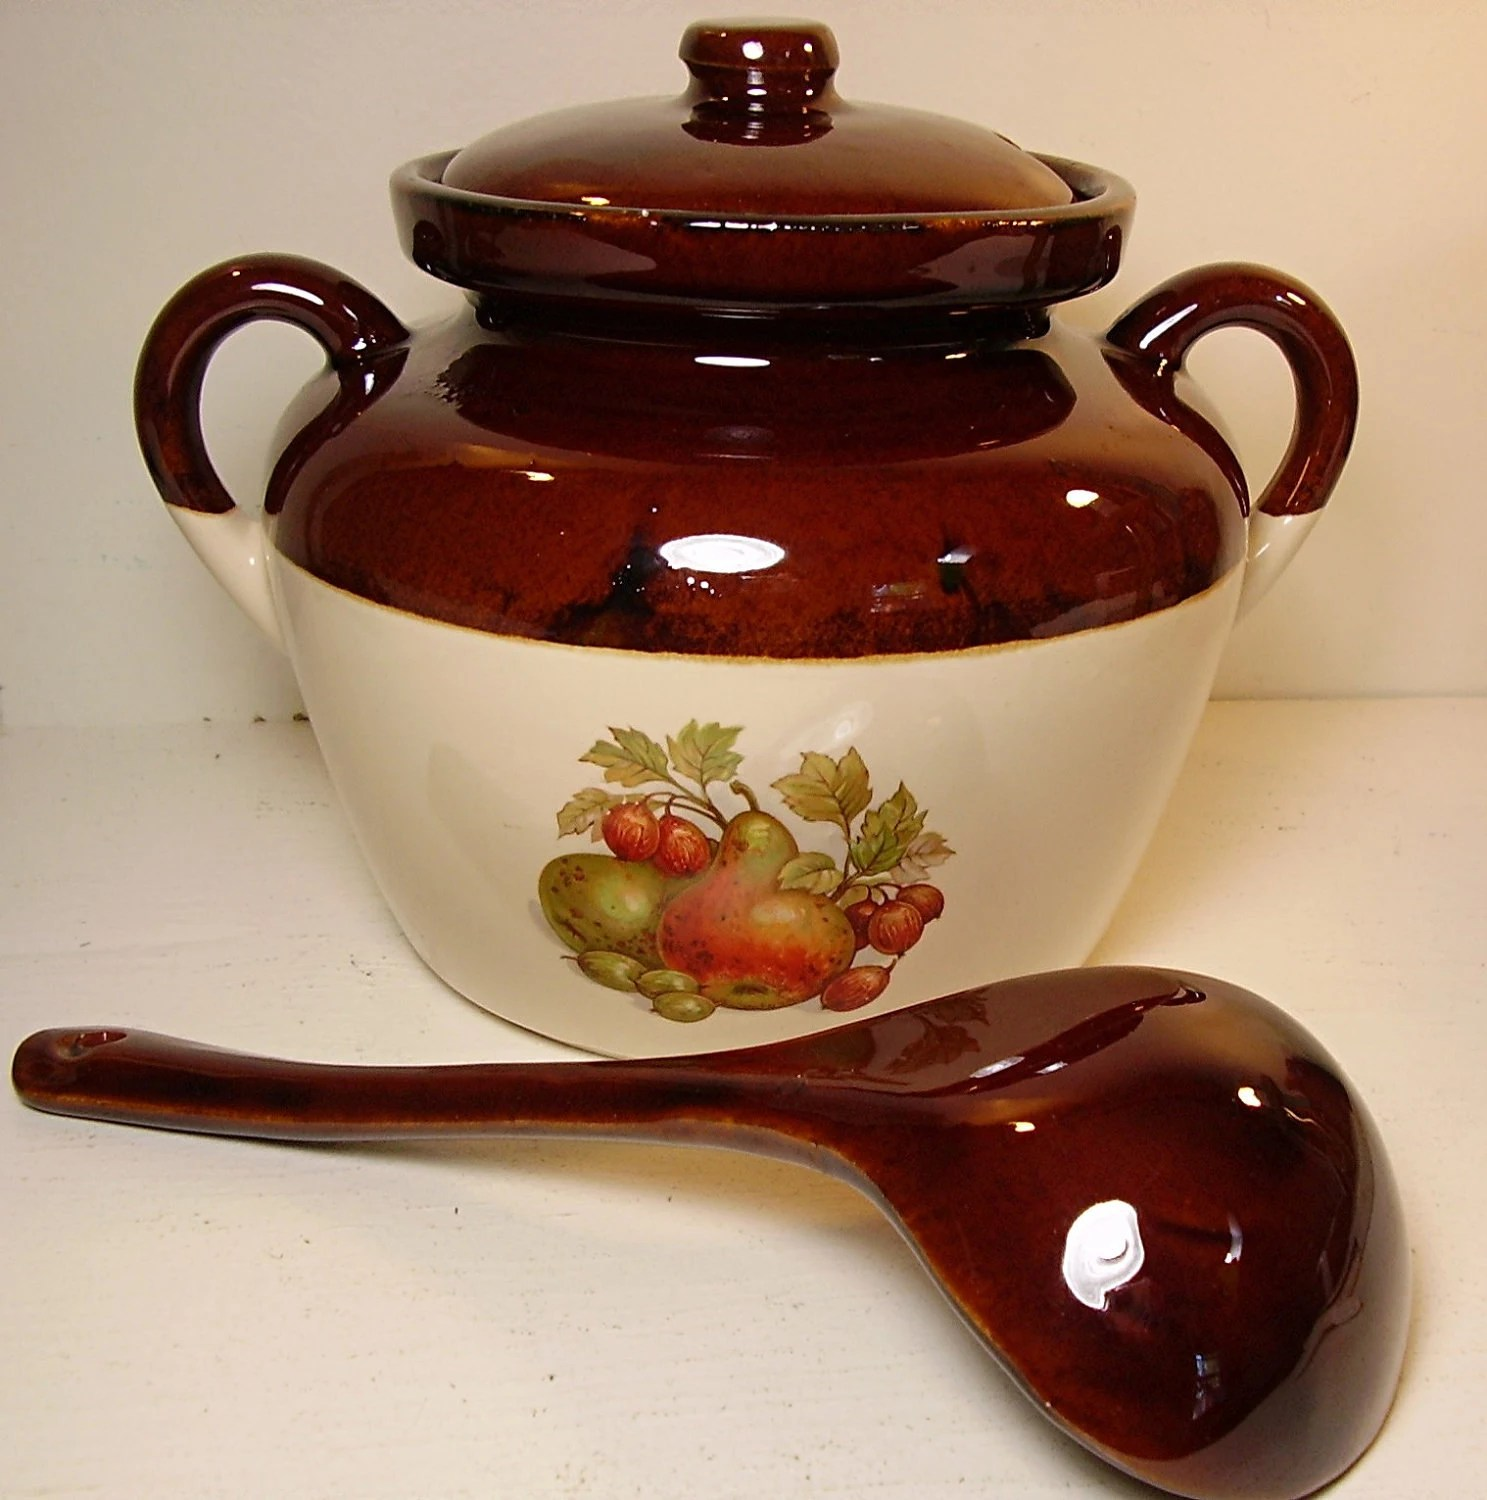 McCoy Pottery Bean Pot Tureen Covered Casserole With Ladle 342